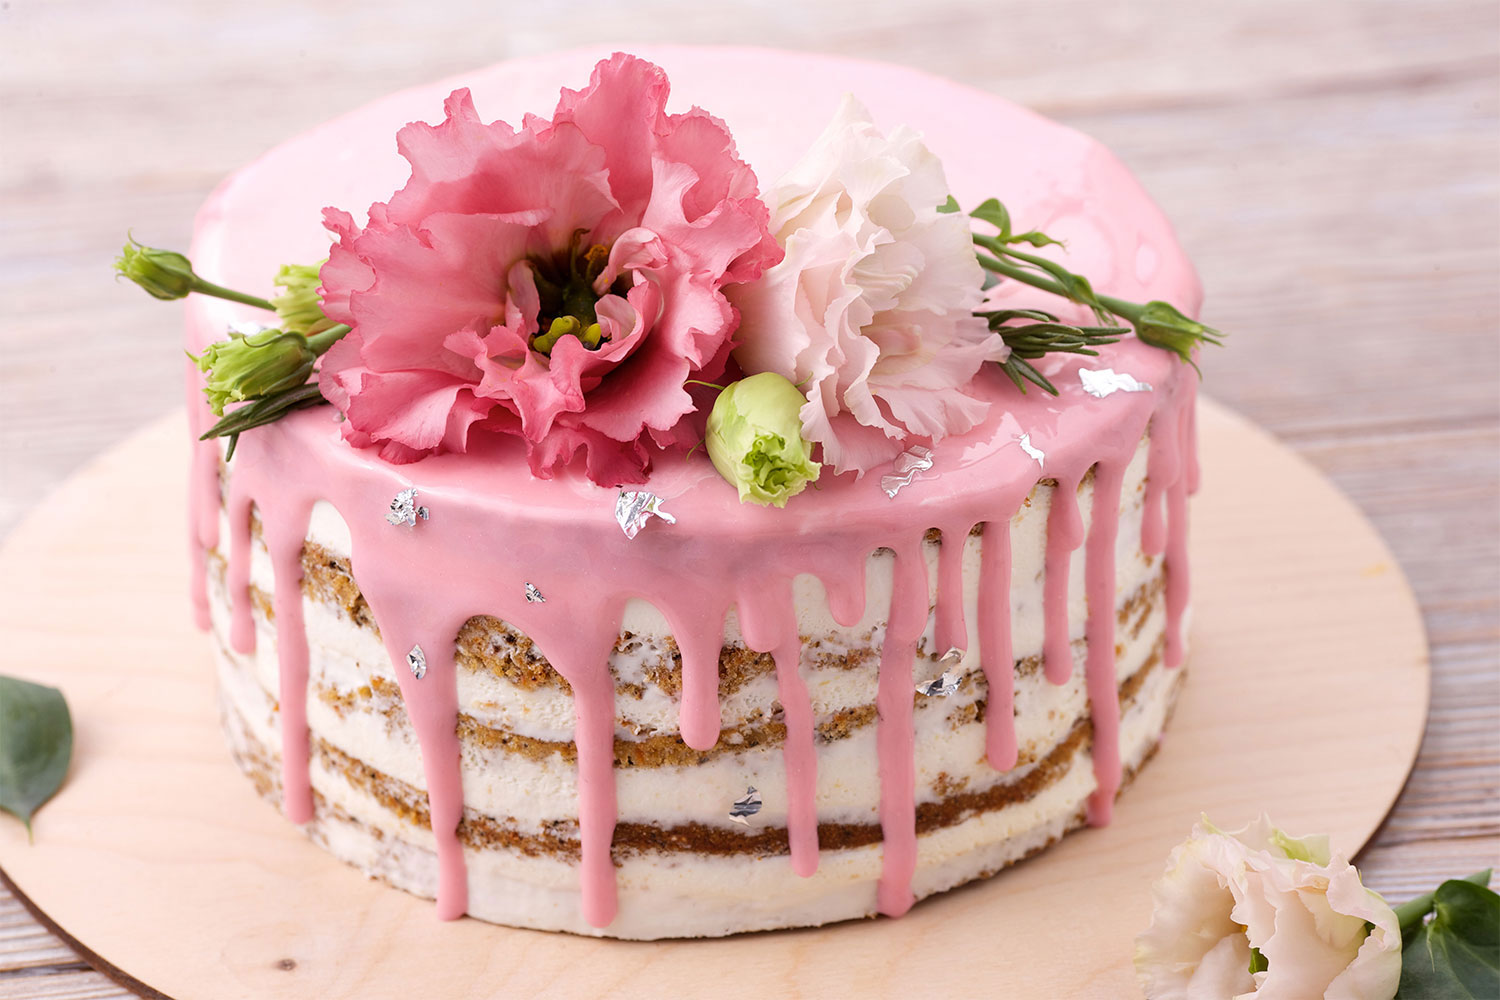 This cake decorating trend is more harmful than you think better this cake decorating trend is more harmful than you think better homes and gardens izmirmasajfo